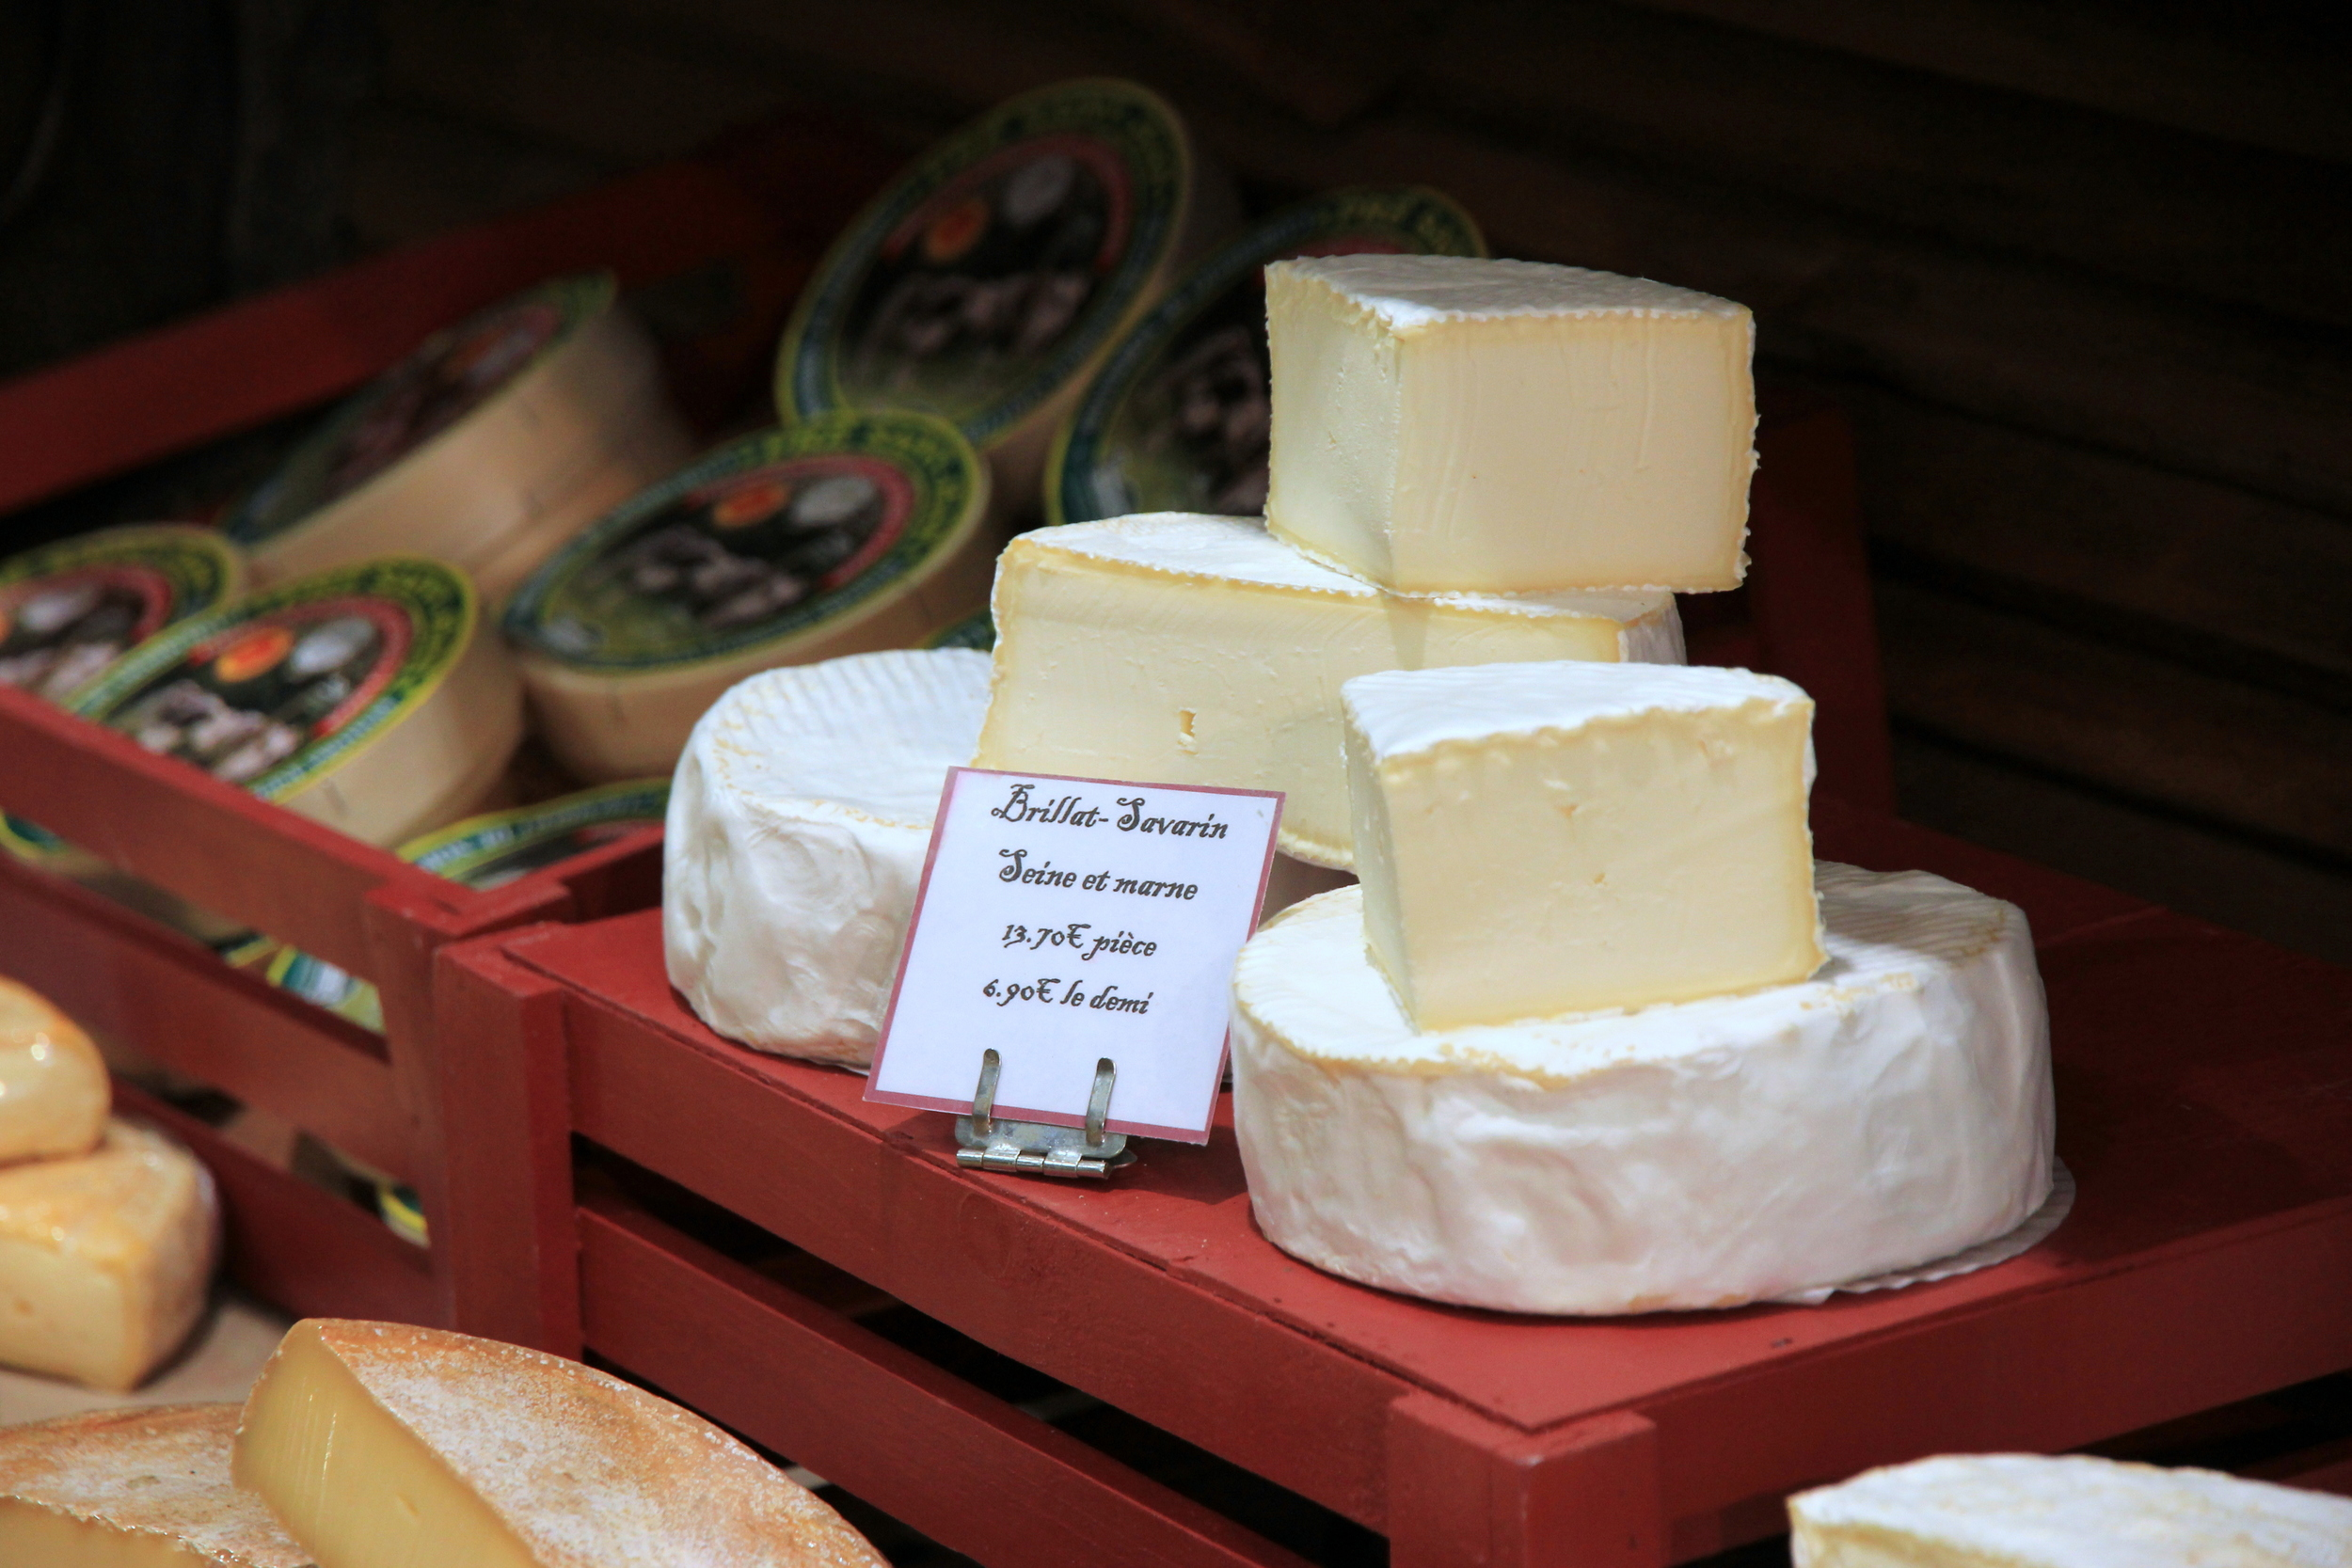 Brillat-Savarin on the shelf at  Fromagerie Libert  (around the corner from me) made in the Seine-et-Marne department, Île de France.